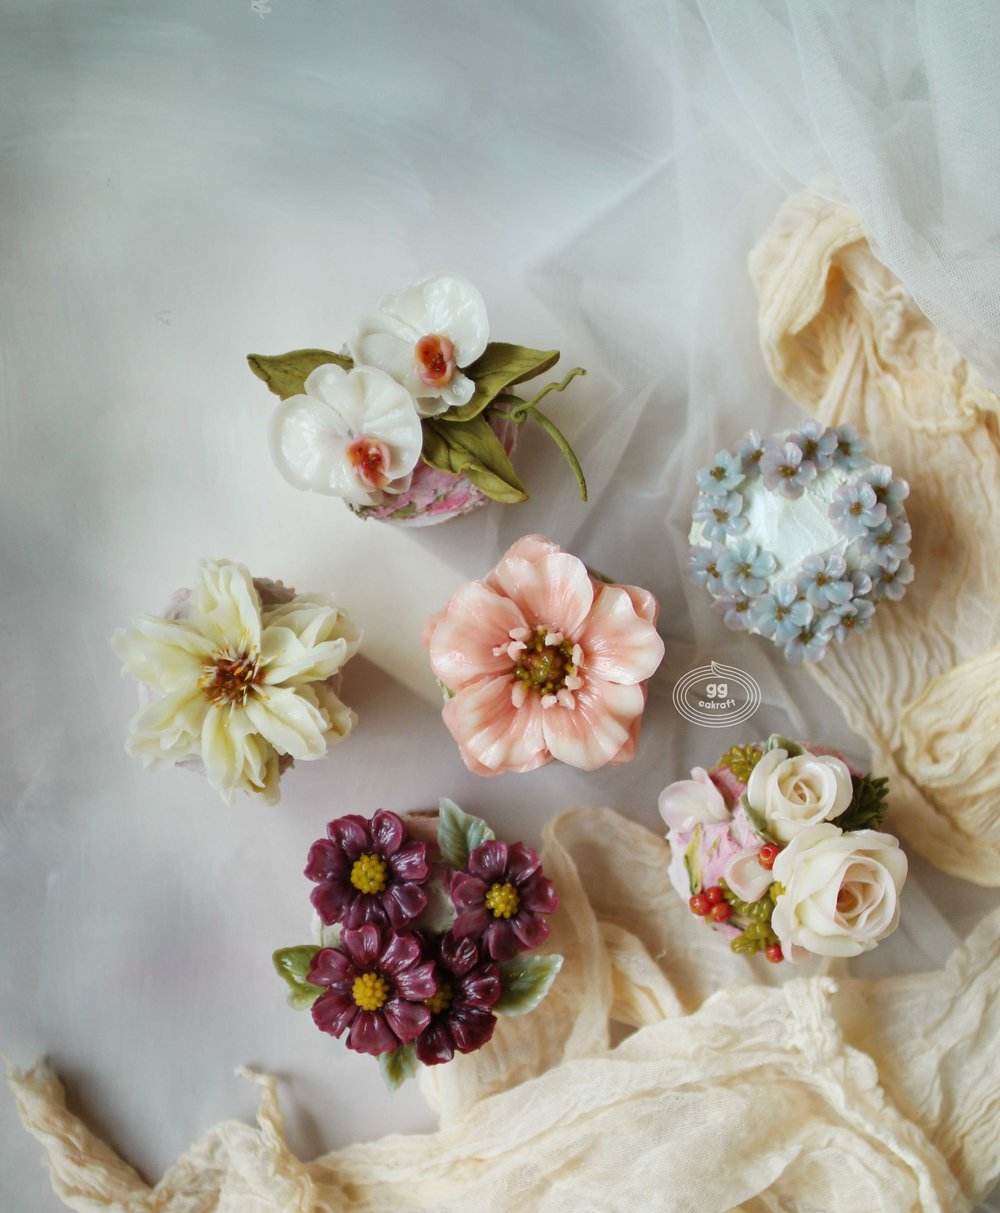 Fancy Cupcakes   - Flower piping : Signature Rose, Helleborus, Gerbera, Orchid, Cosmos, Apple Blossom.,  - Glossy buttercream demo.  - The images are for reference ONLY